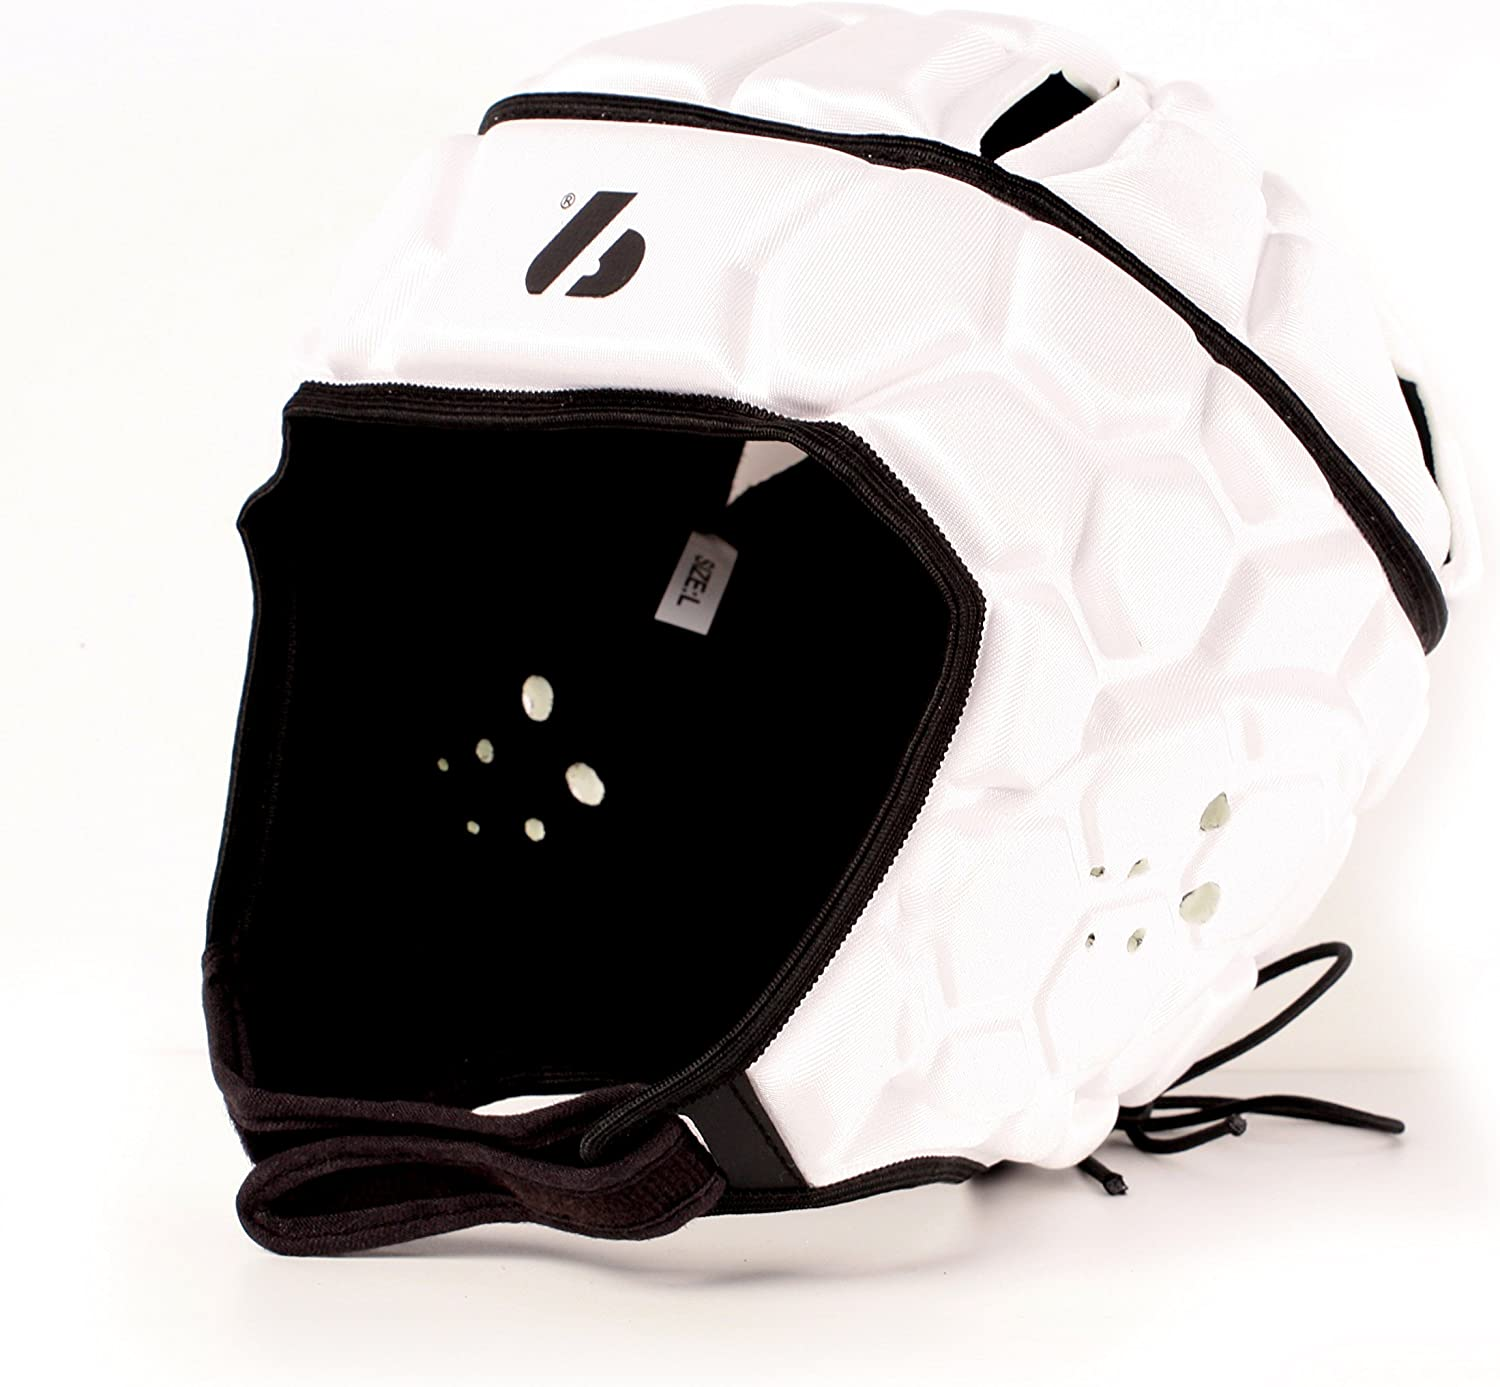 BARNETT Heat Pro Helmet - Soft Padded Headgear - Rugby -Flag Football - Youth and Adult Sizing 7 on 7-7v7 Soft Shell- Epilepsy Head Fall Protection, White : Sports & Outdoors